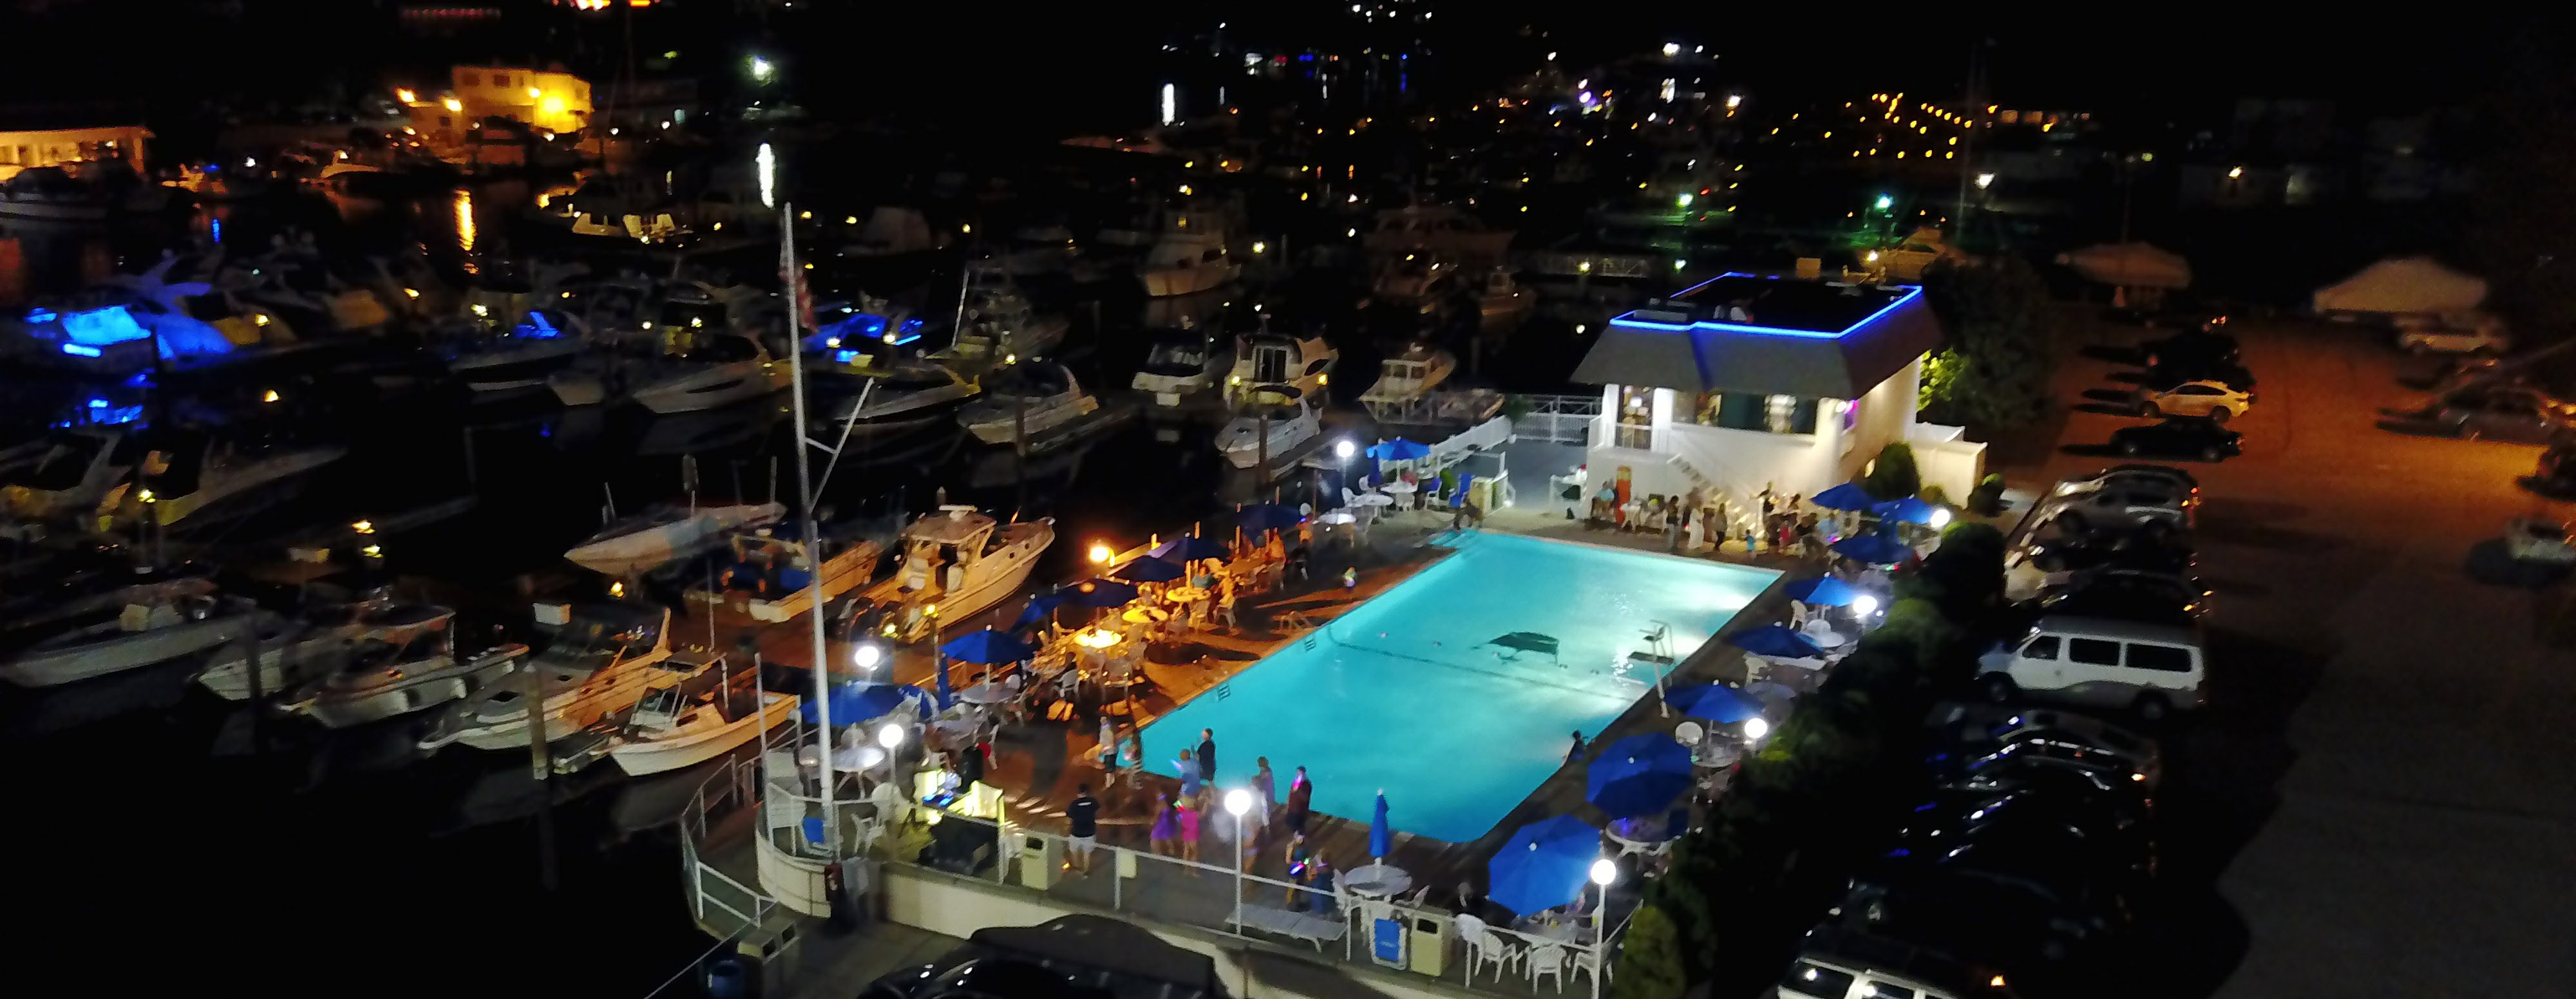 Imperial Yacht Club Pool At Night, New Rochelle, NY